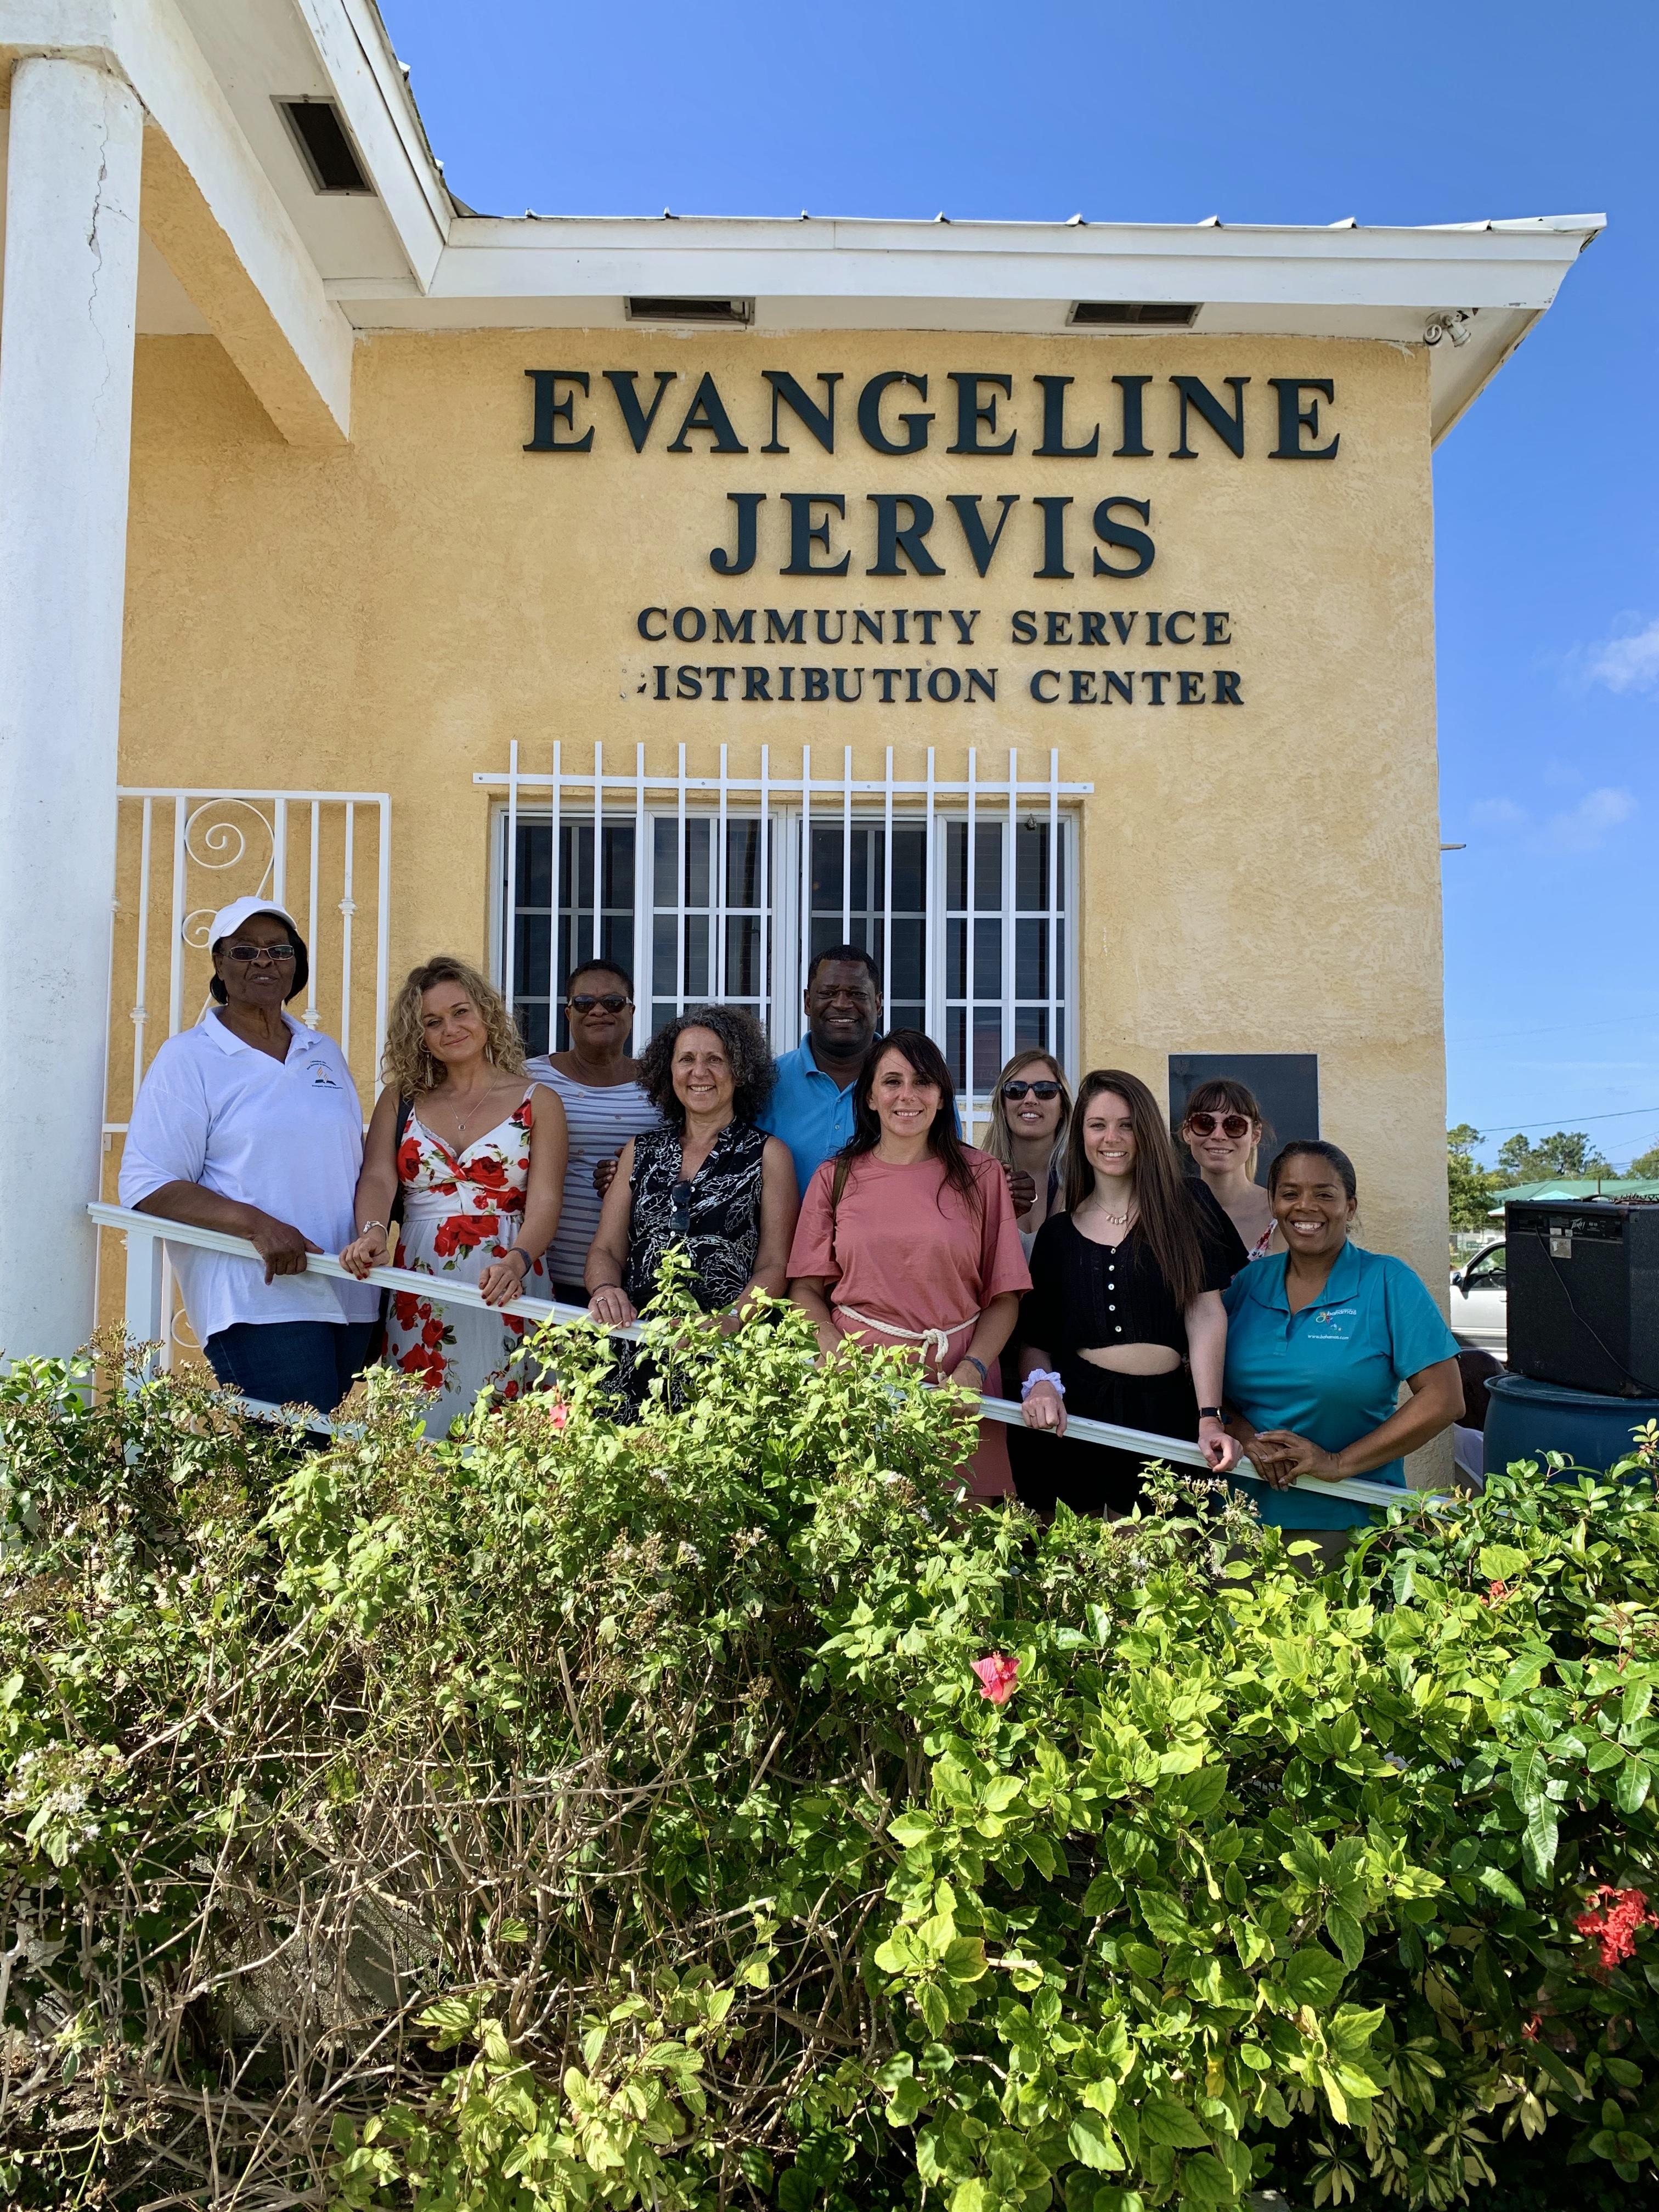 The group of French influencers visited the Evangeline Jervis Community Service Distribution Centre to learn about areas of need on the island and how visitors are able to assist. Here the group is pictured with BMOTA representatives and members of the Fr